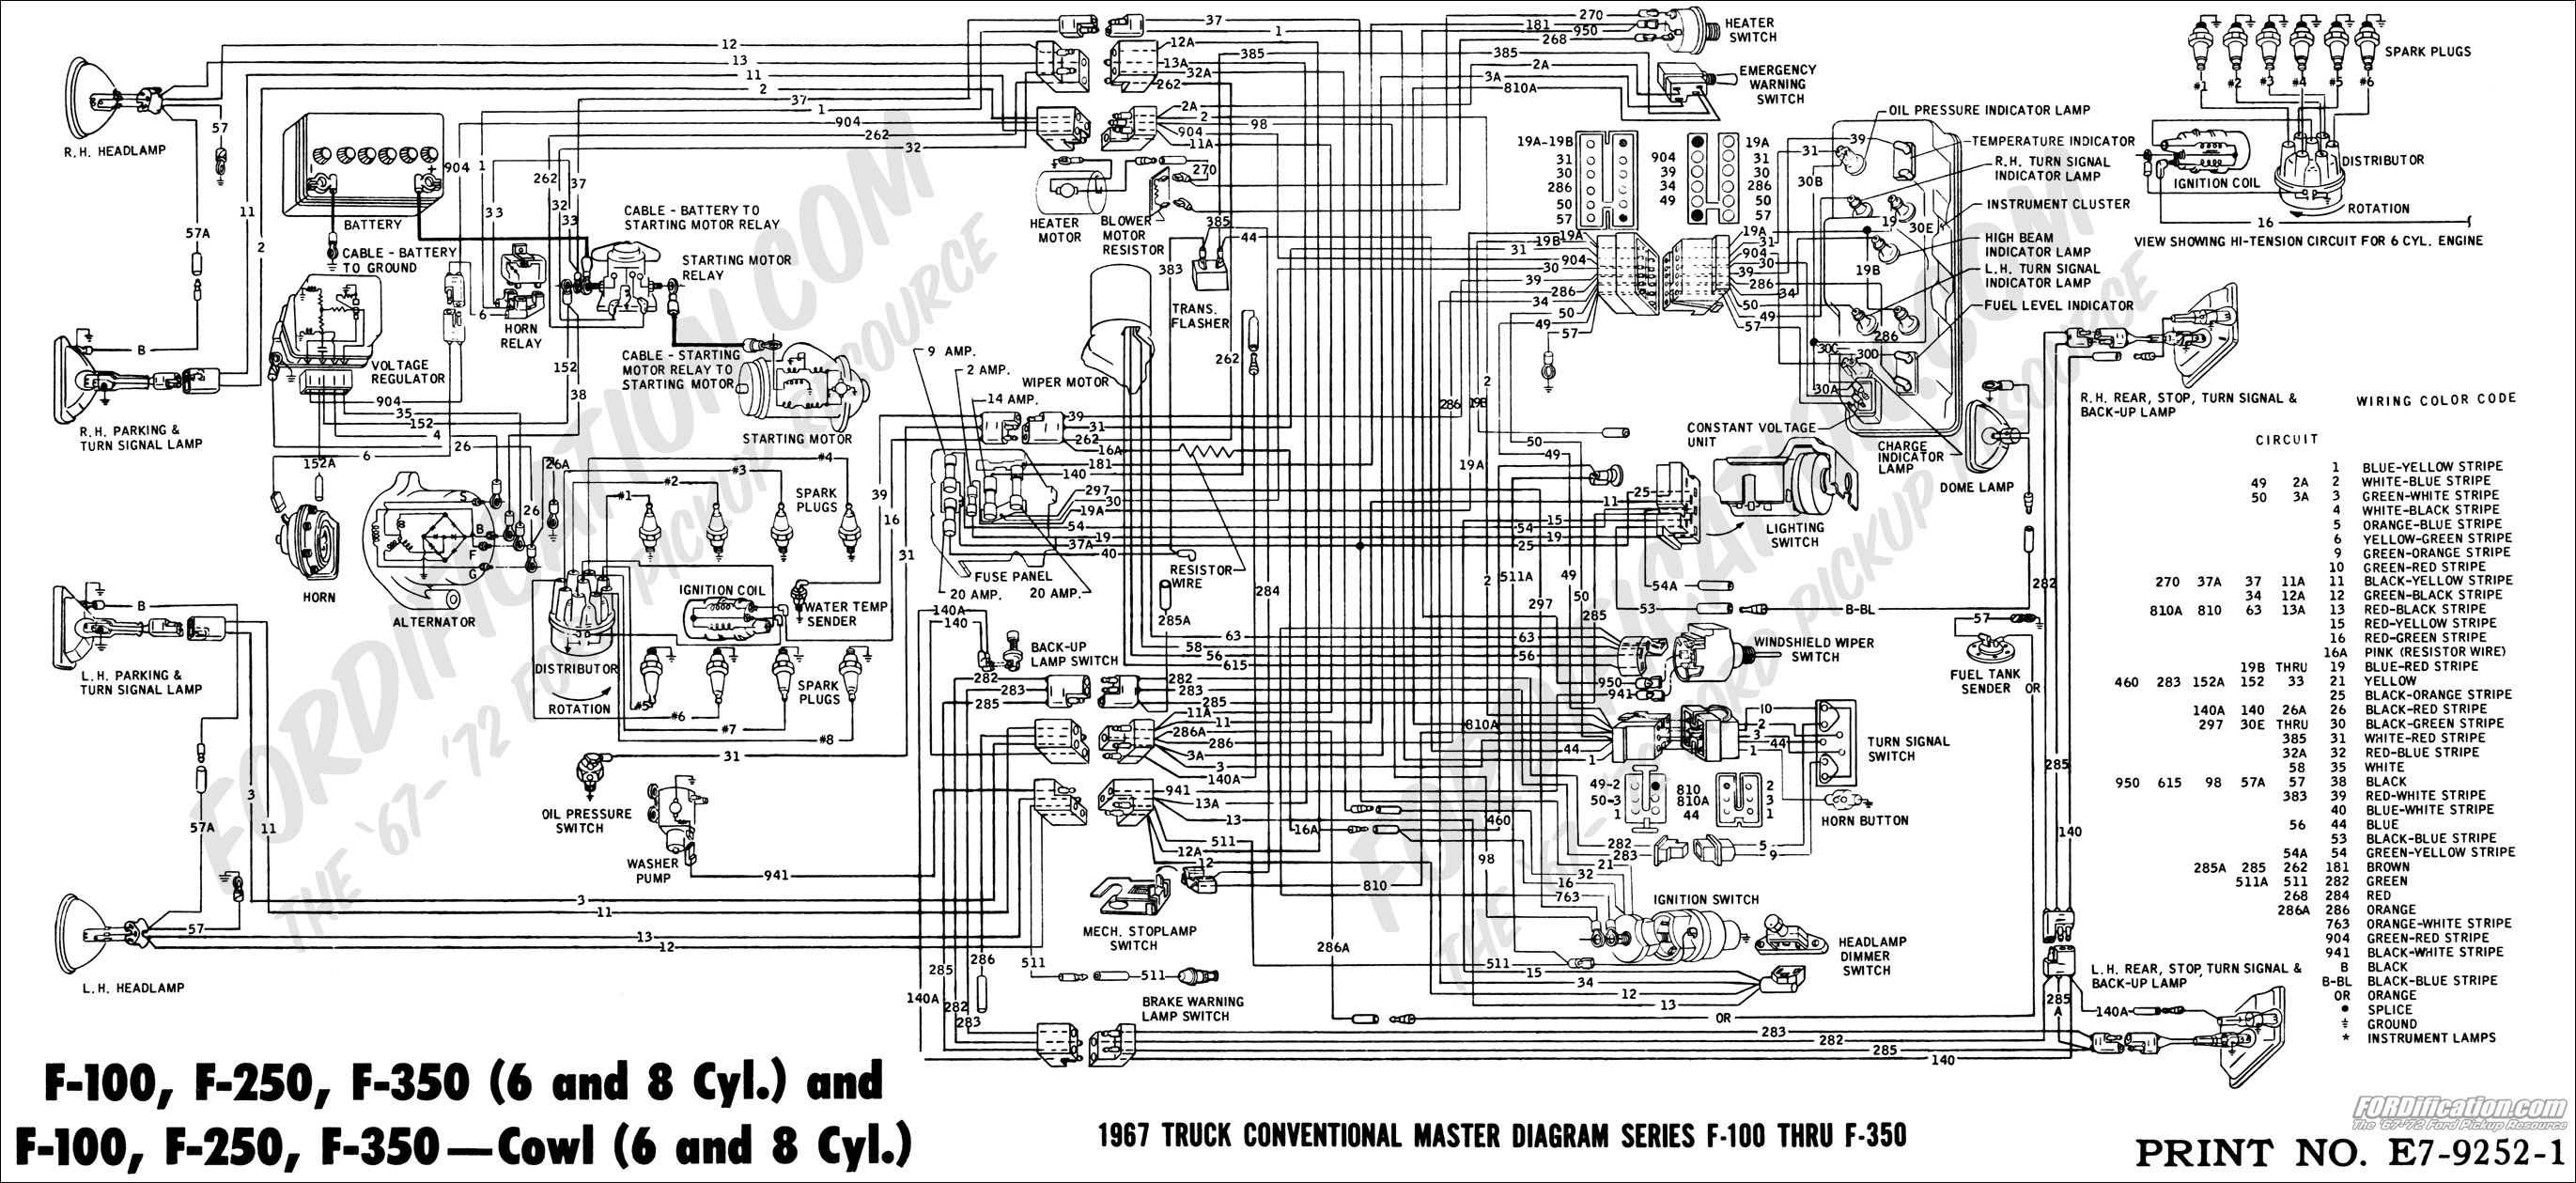 1982 Toyota Pickup Alternator Wiring Diagram Free Wire Ford 1987 F800 Data Rh 6 3 19 Reisen Fuer Meister De Charging Circuit Problems